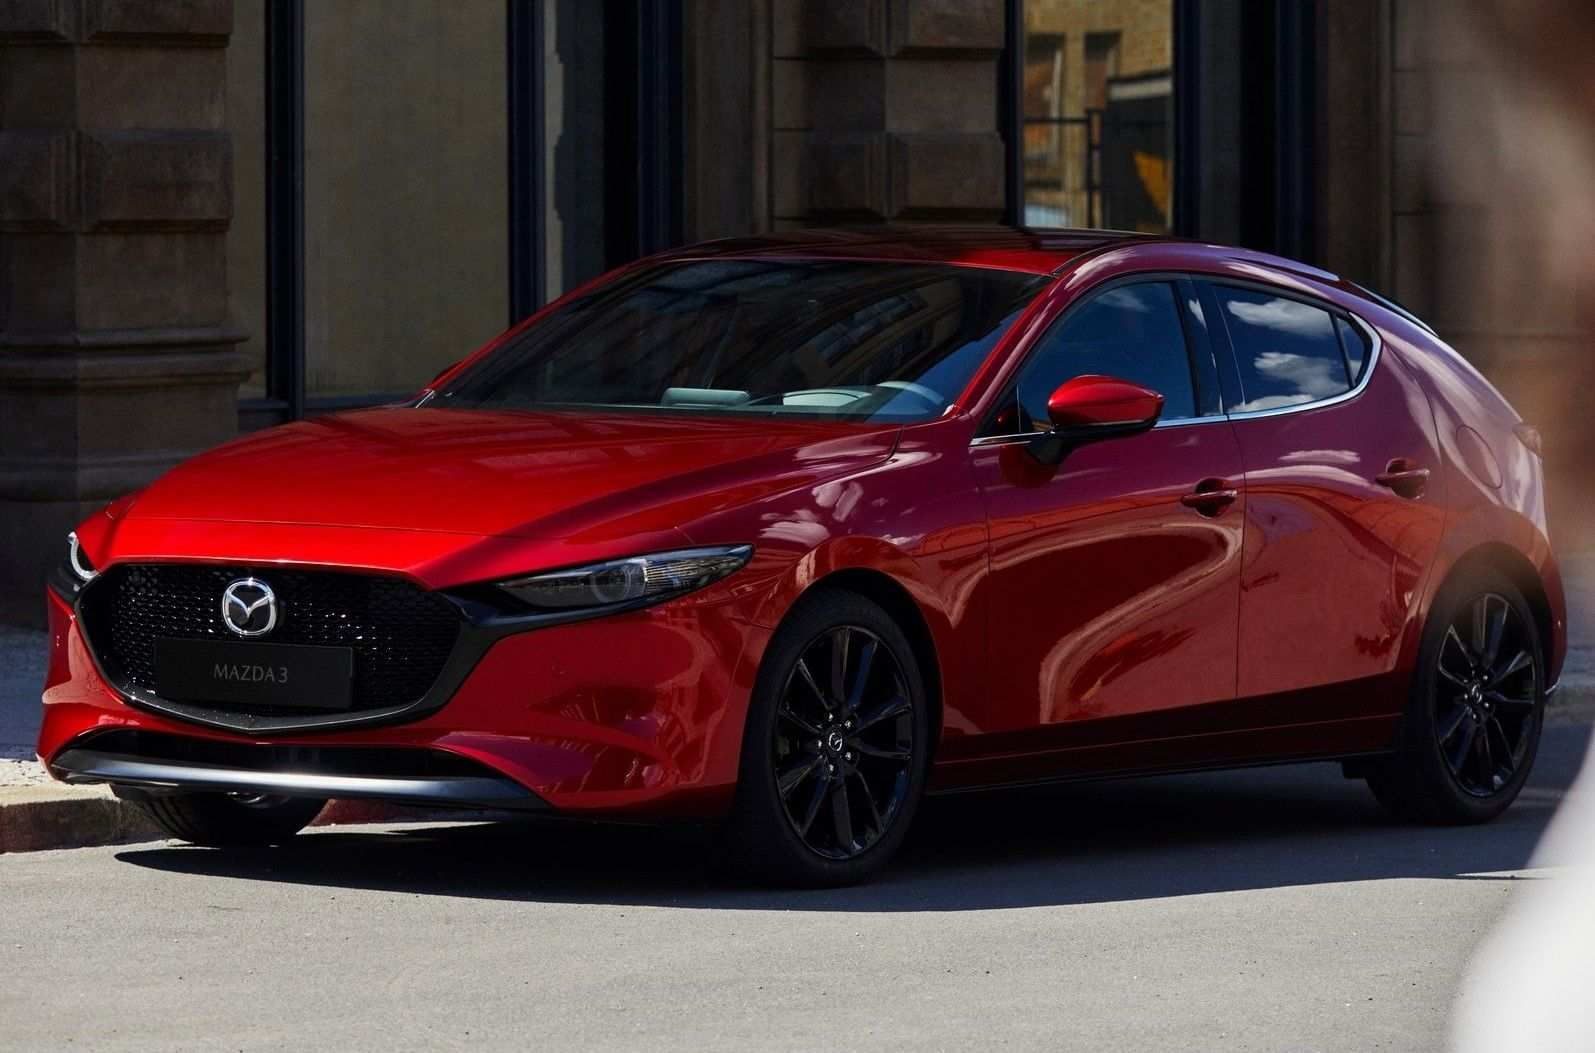 51 The Best 2019 Mazda 3 Interior